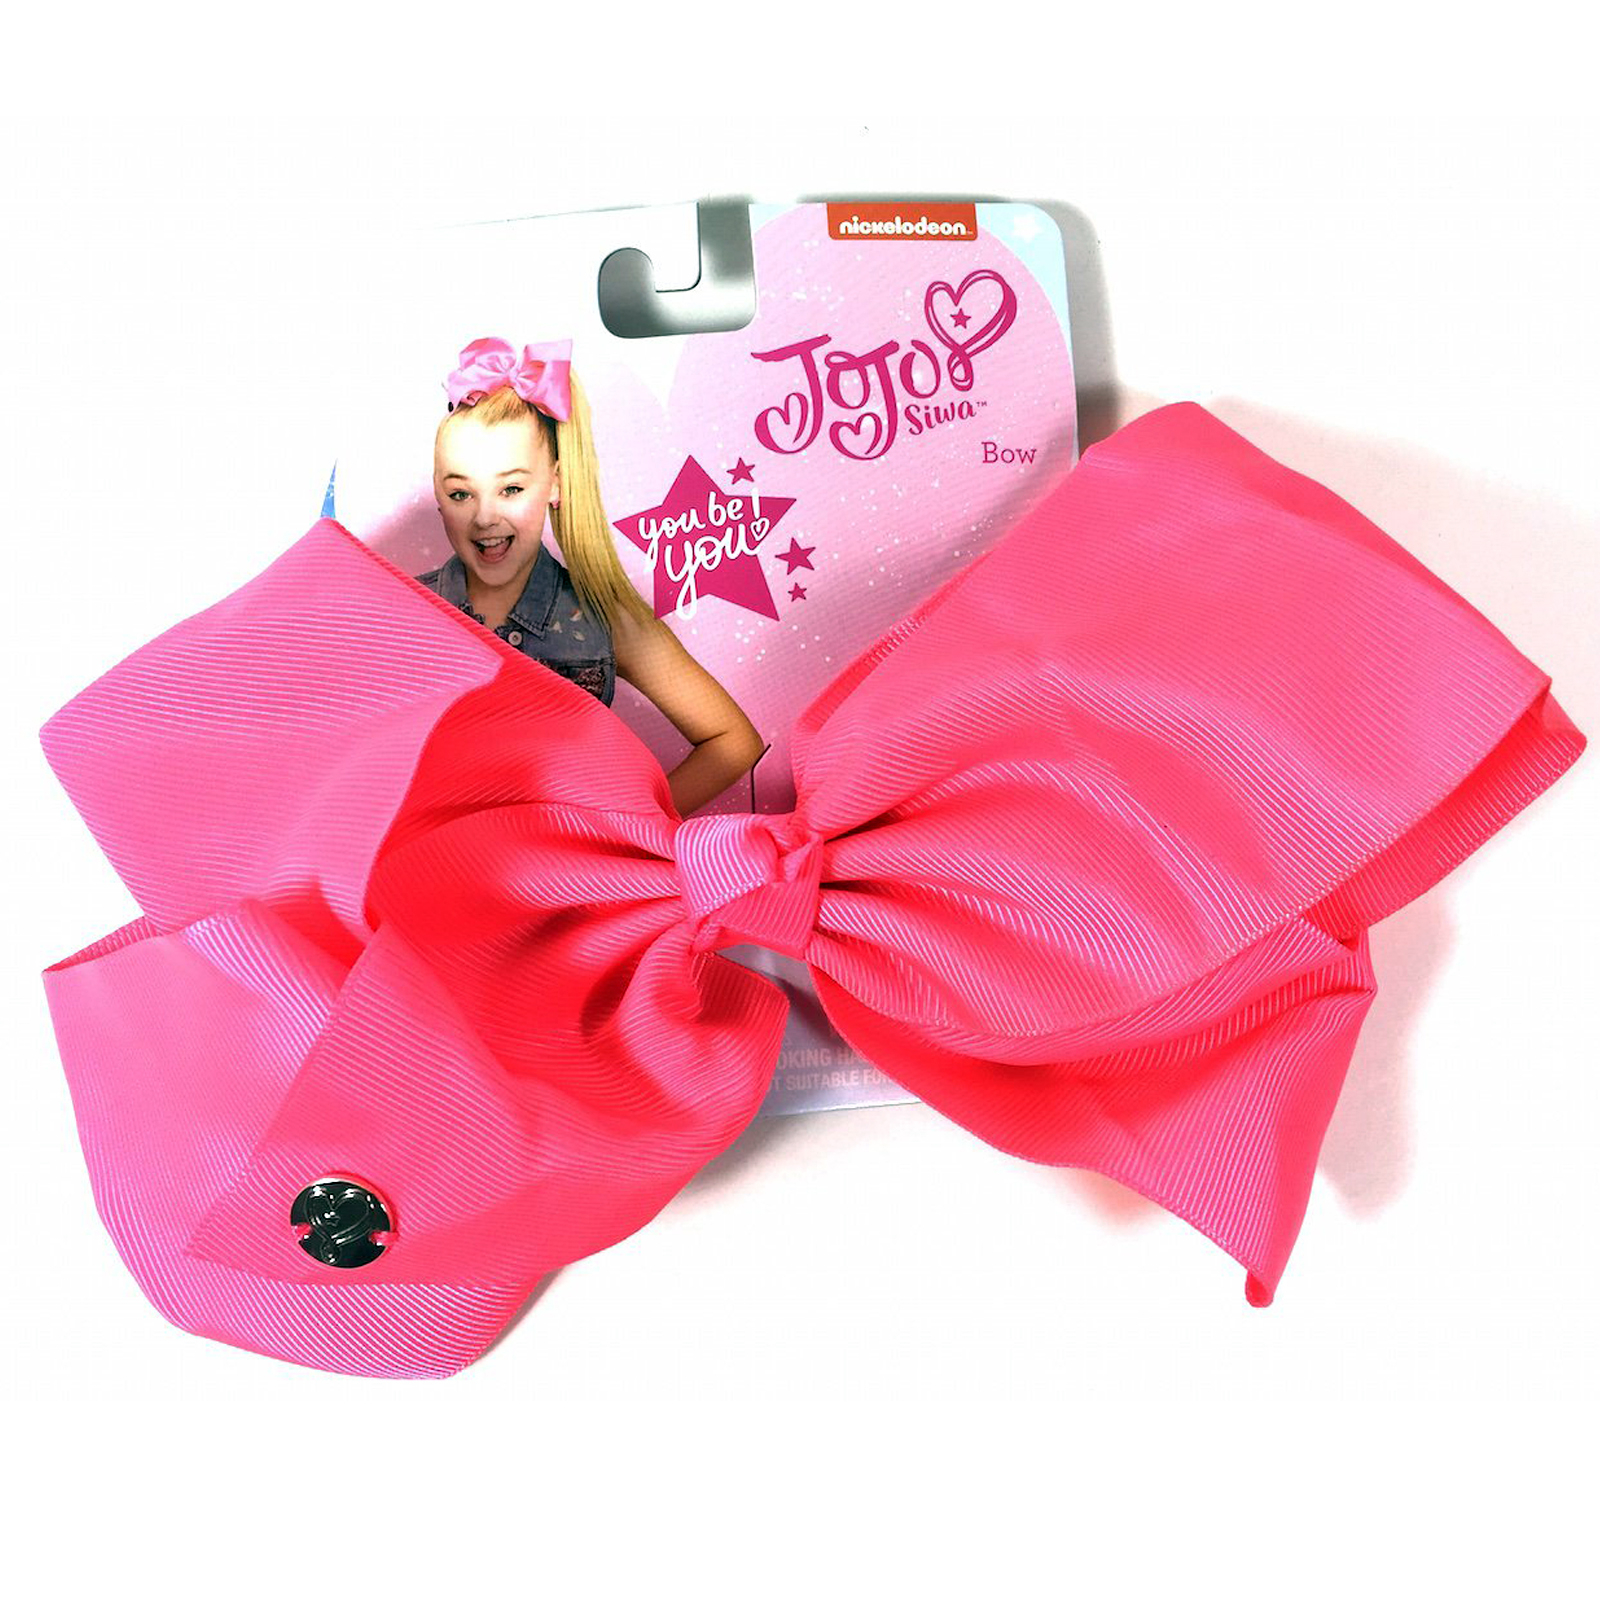 Nickelodeon JoJo Siwa Girls Large Neon Pink Bow Kids Fashion